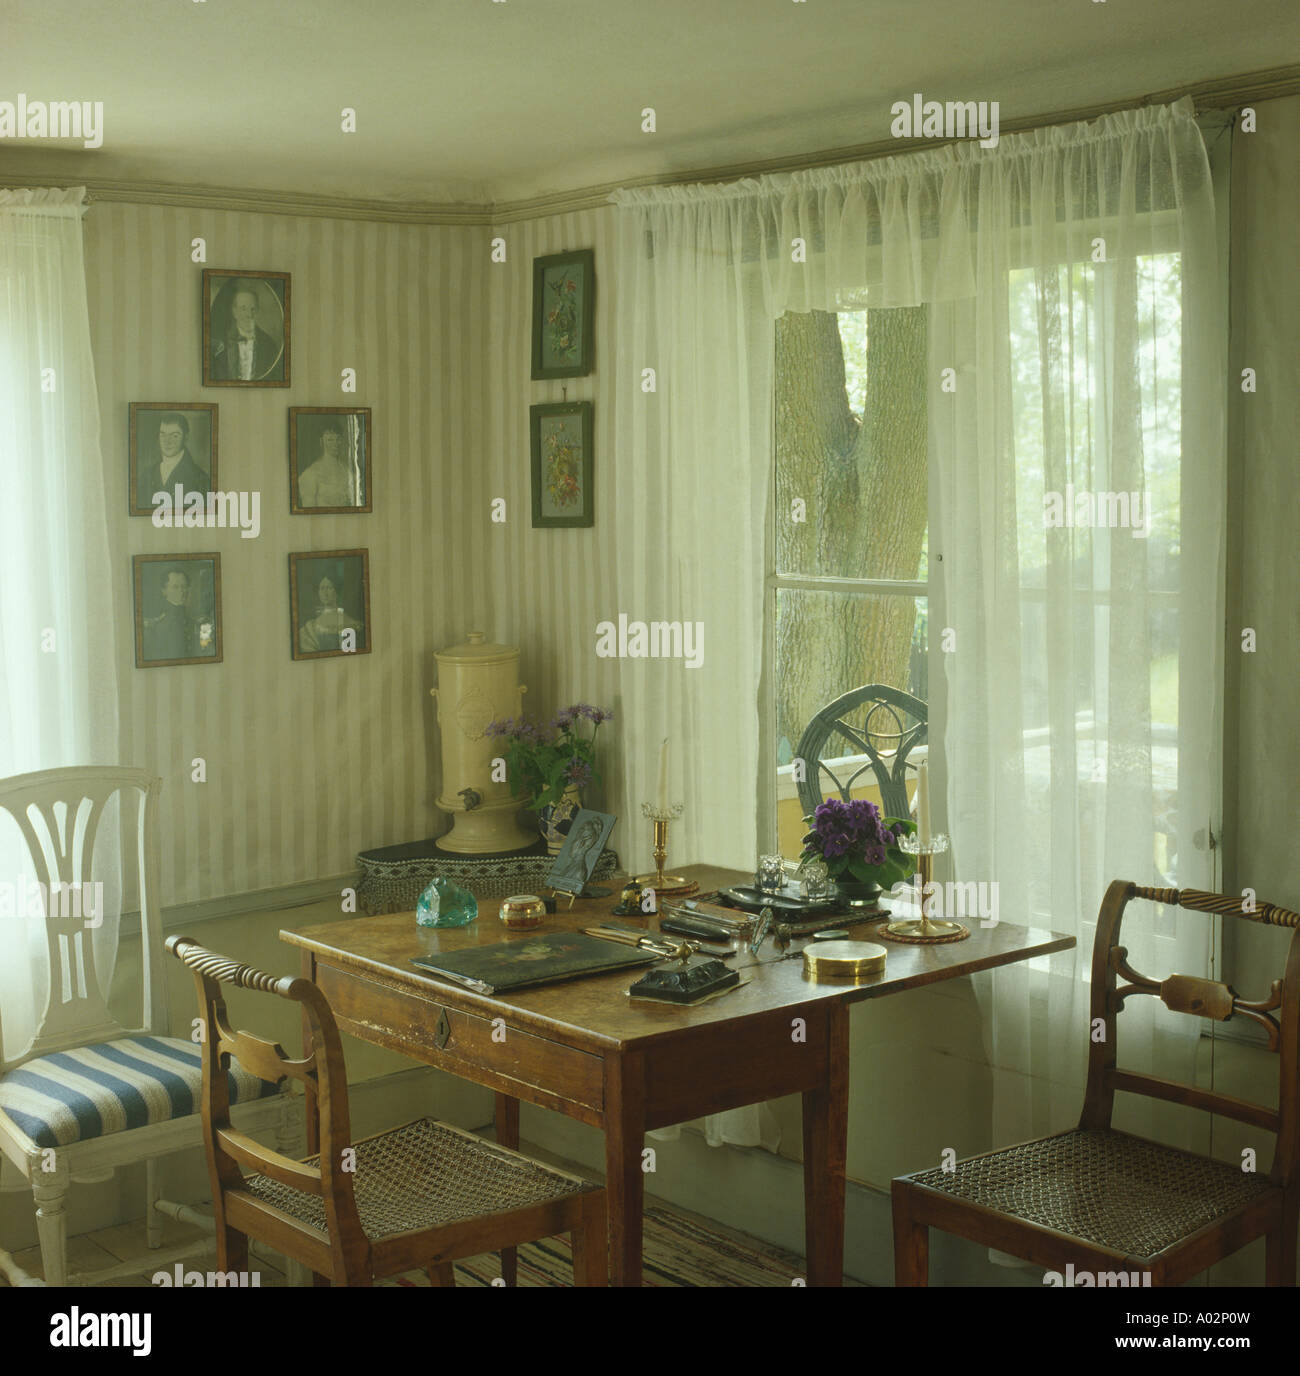 Antique Furniture In Dining Room With Wallpaper And White Voile Curtains